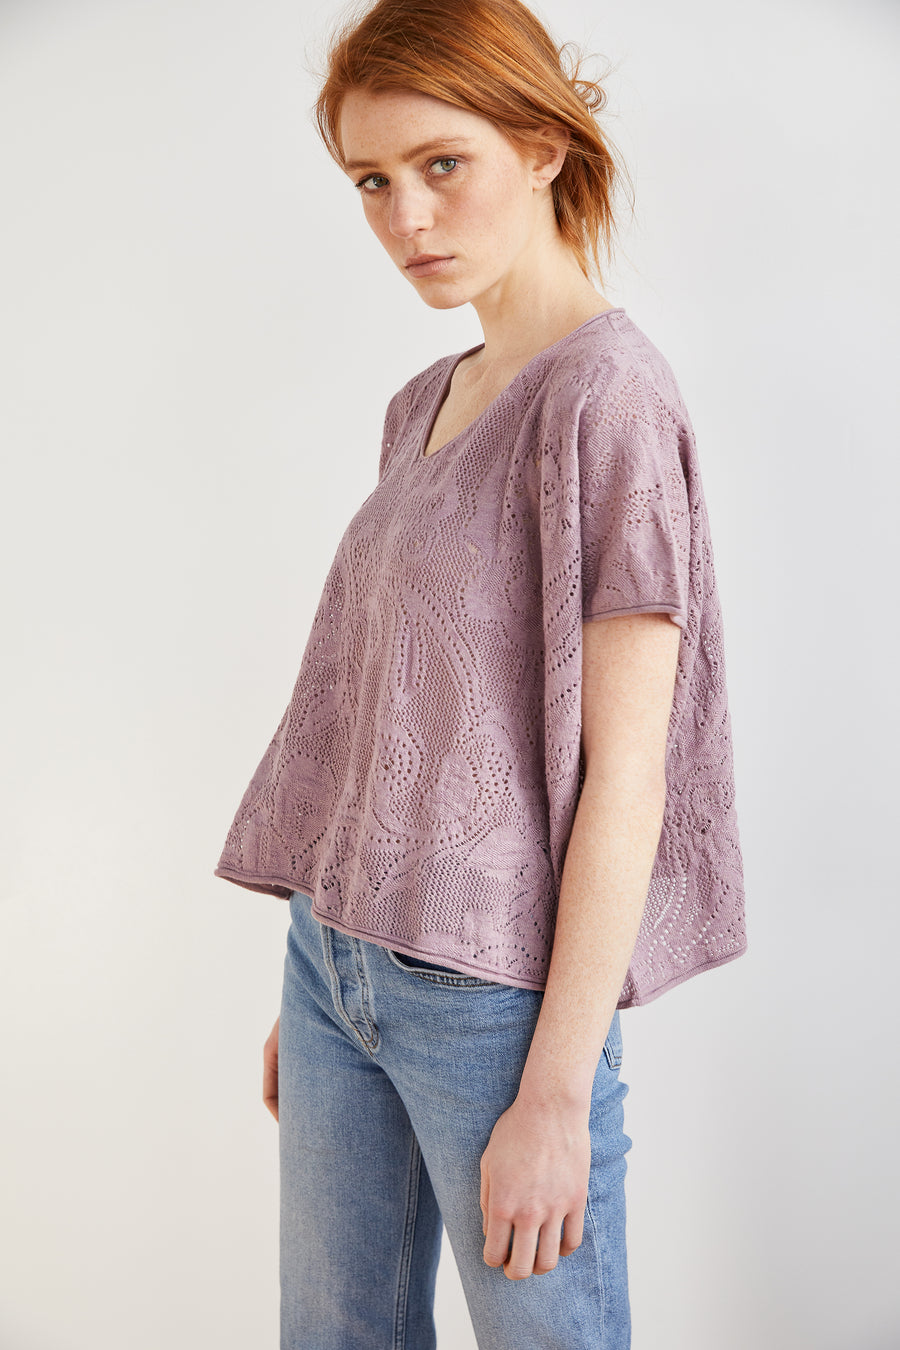 Adult Lace Cropped Tee - Antique Mauve